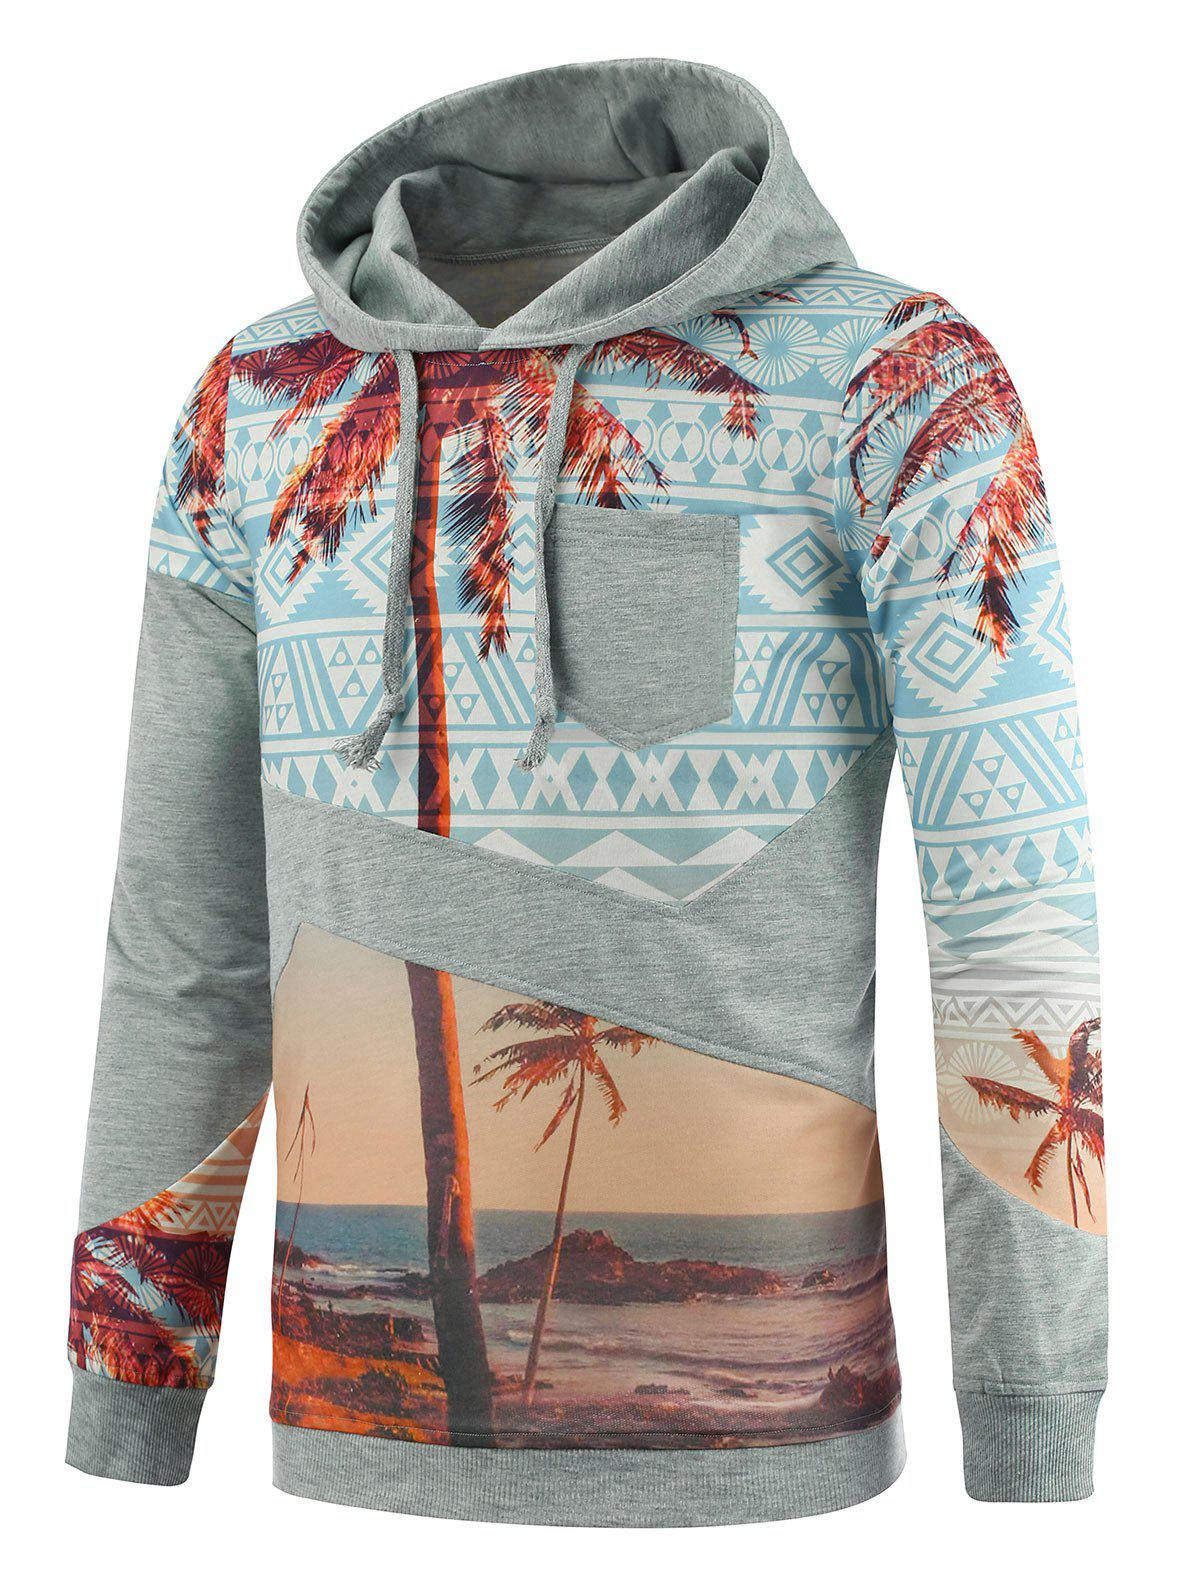 Sweat à Capuche Imprimé Cocotier Tribal avec Poche - multicolore 3XL